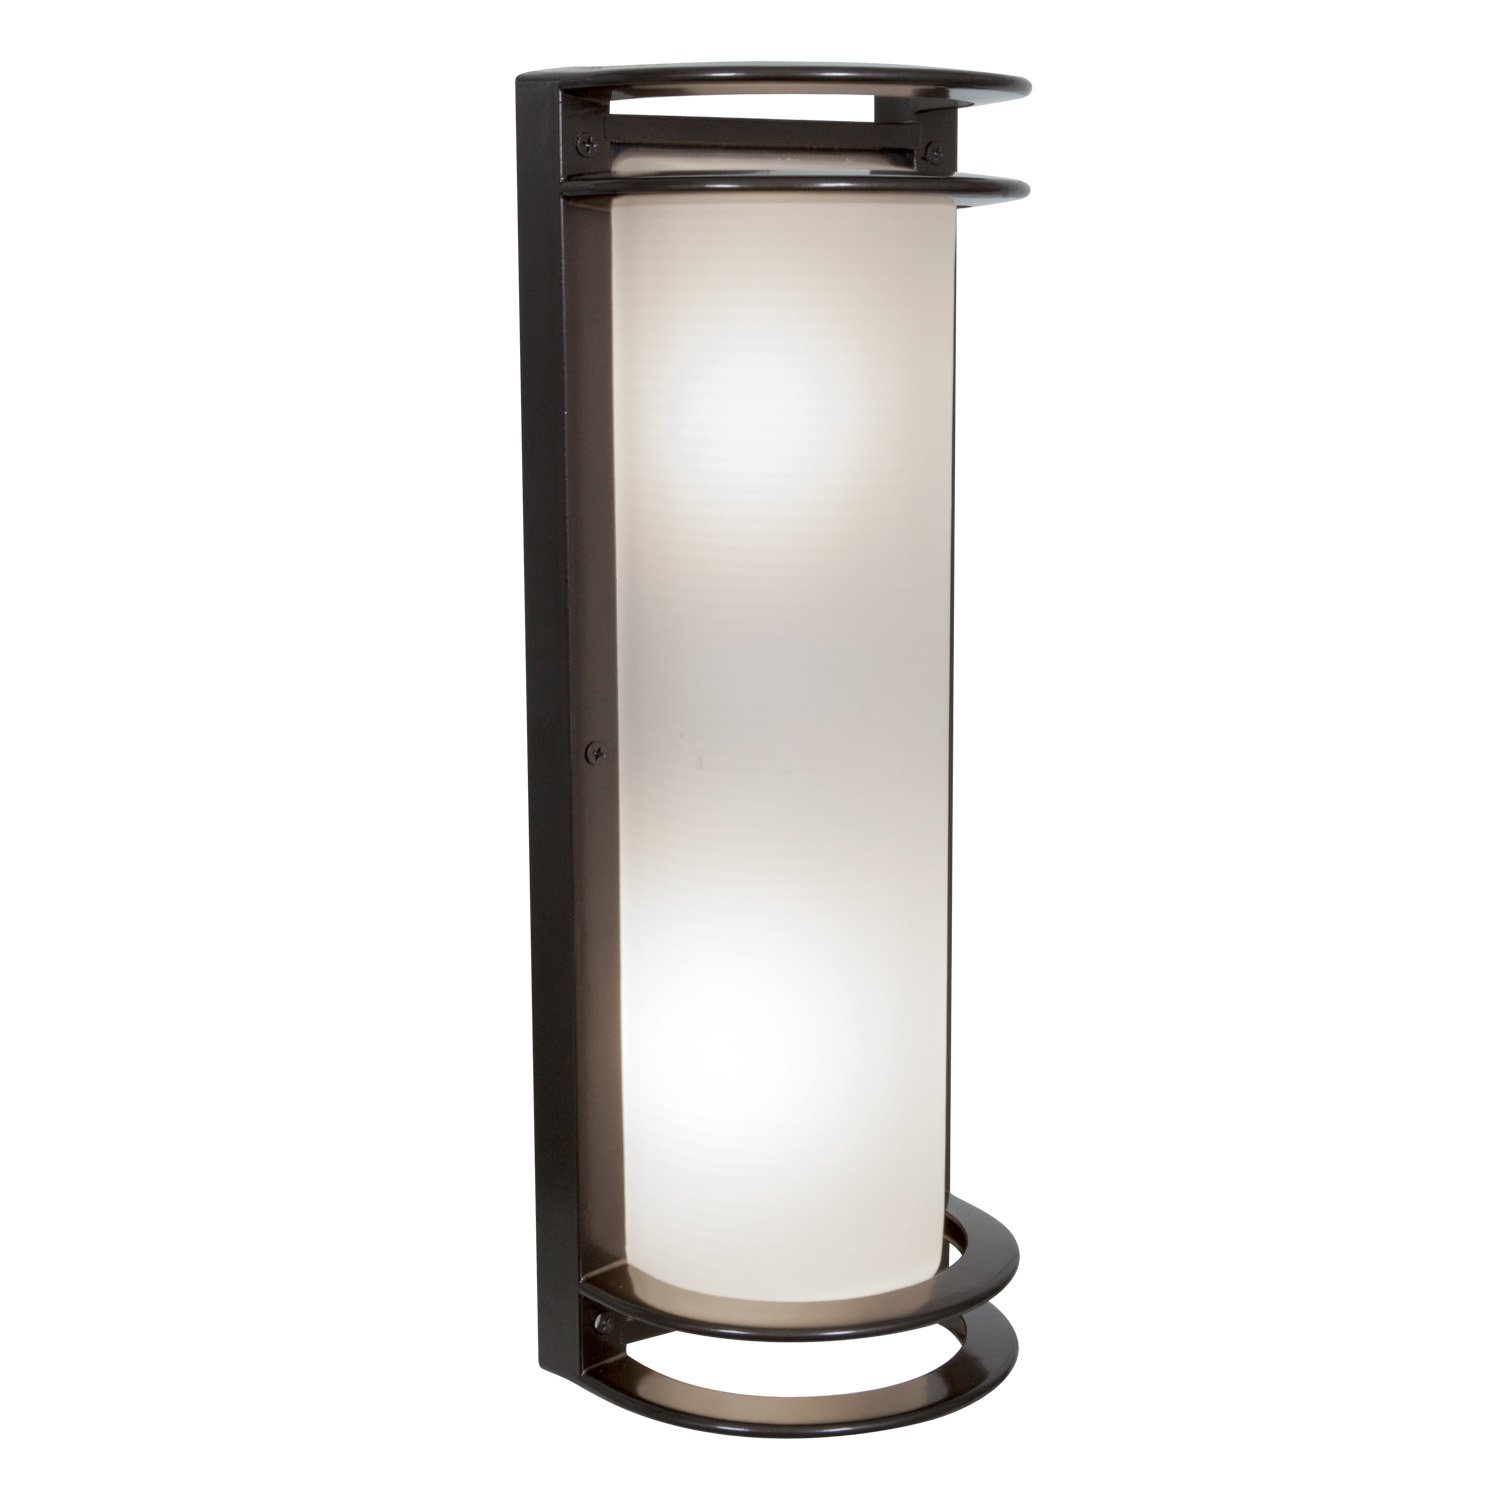 Amazon access lighting 20344mgled brzrfr poseidon led light amazon access lighting 20344mgled brzrfr poseidon led light wet location bulkhead with ribbed frosted glass shade bronze finish home improvement arubaitofo Gallery